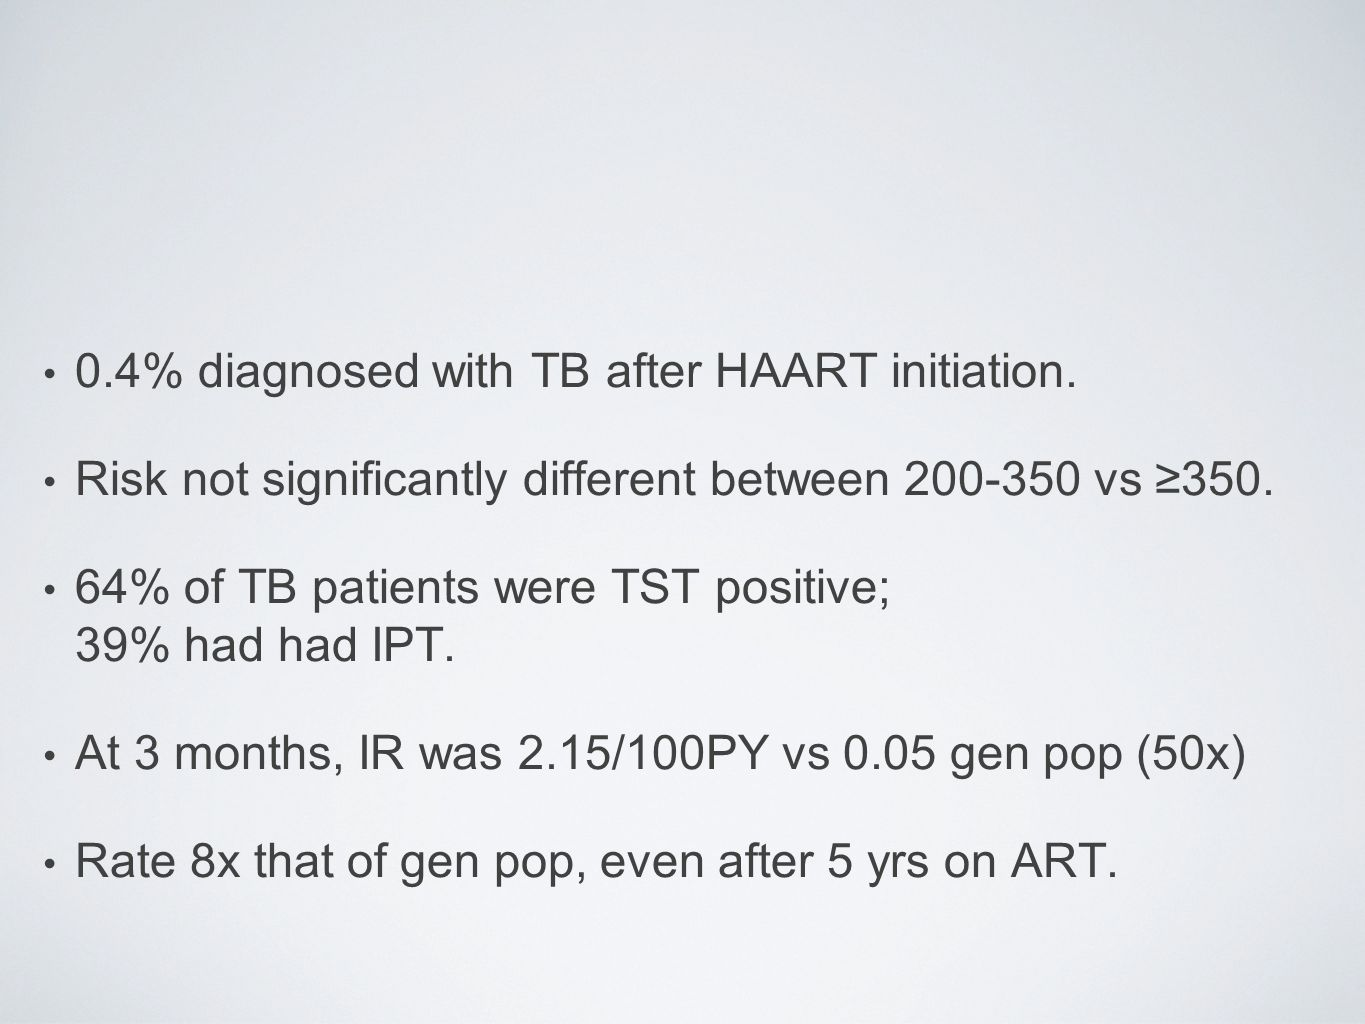 0.4% diagnosed with TB after HAART initiation. Risk not significantly different between 200-350 vs ≥350. 64% of TB patients were TST positive; 39% had